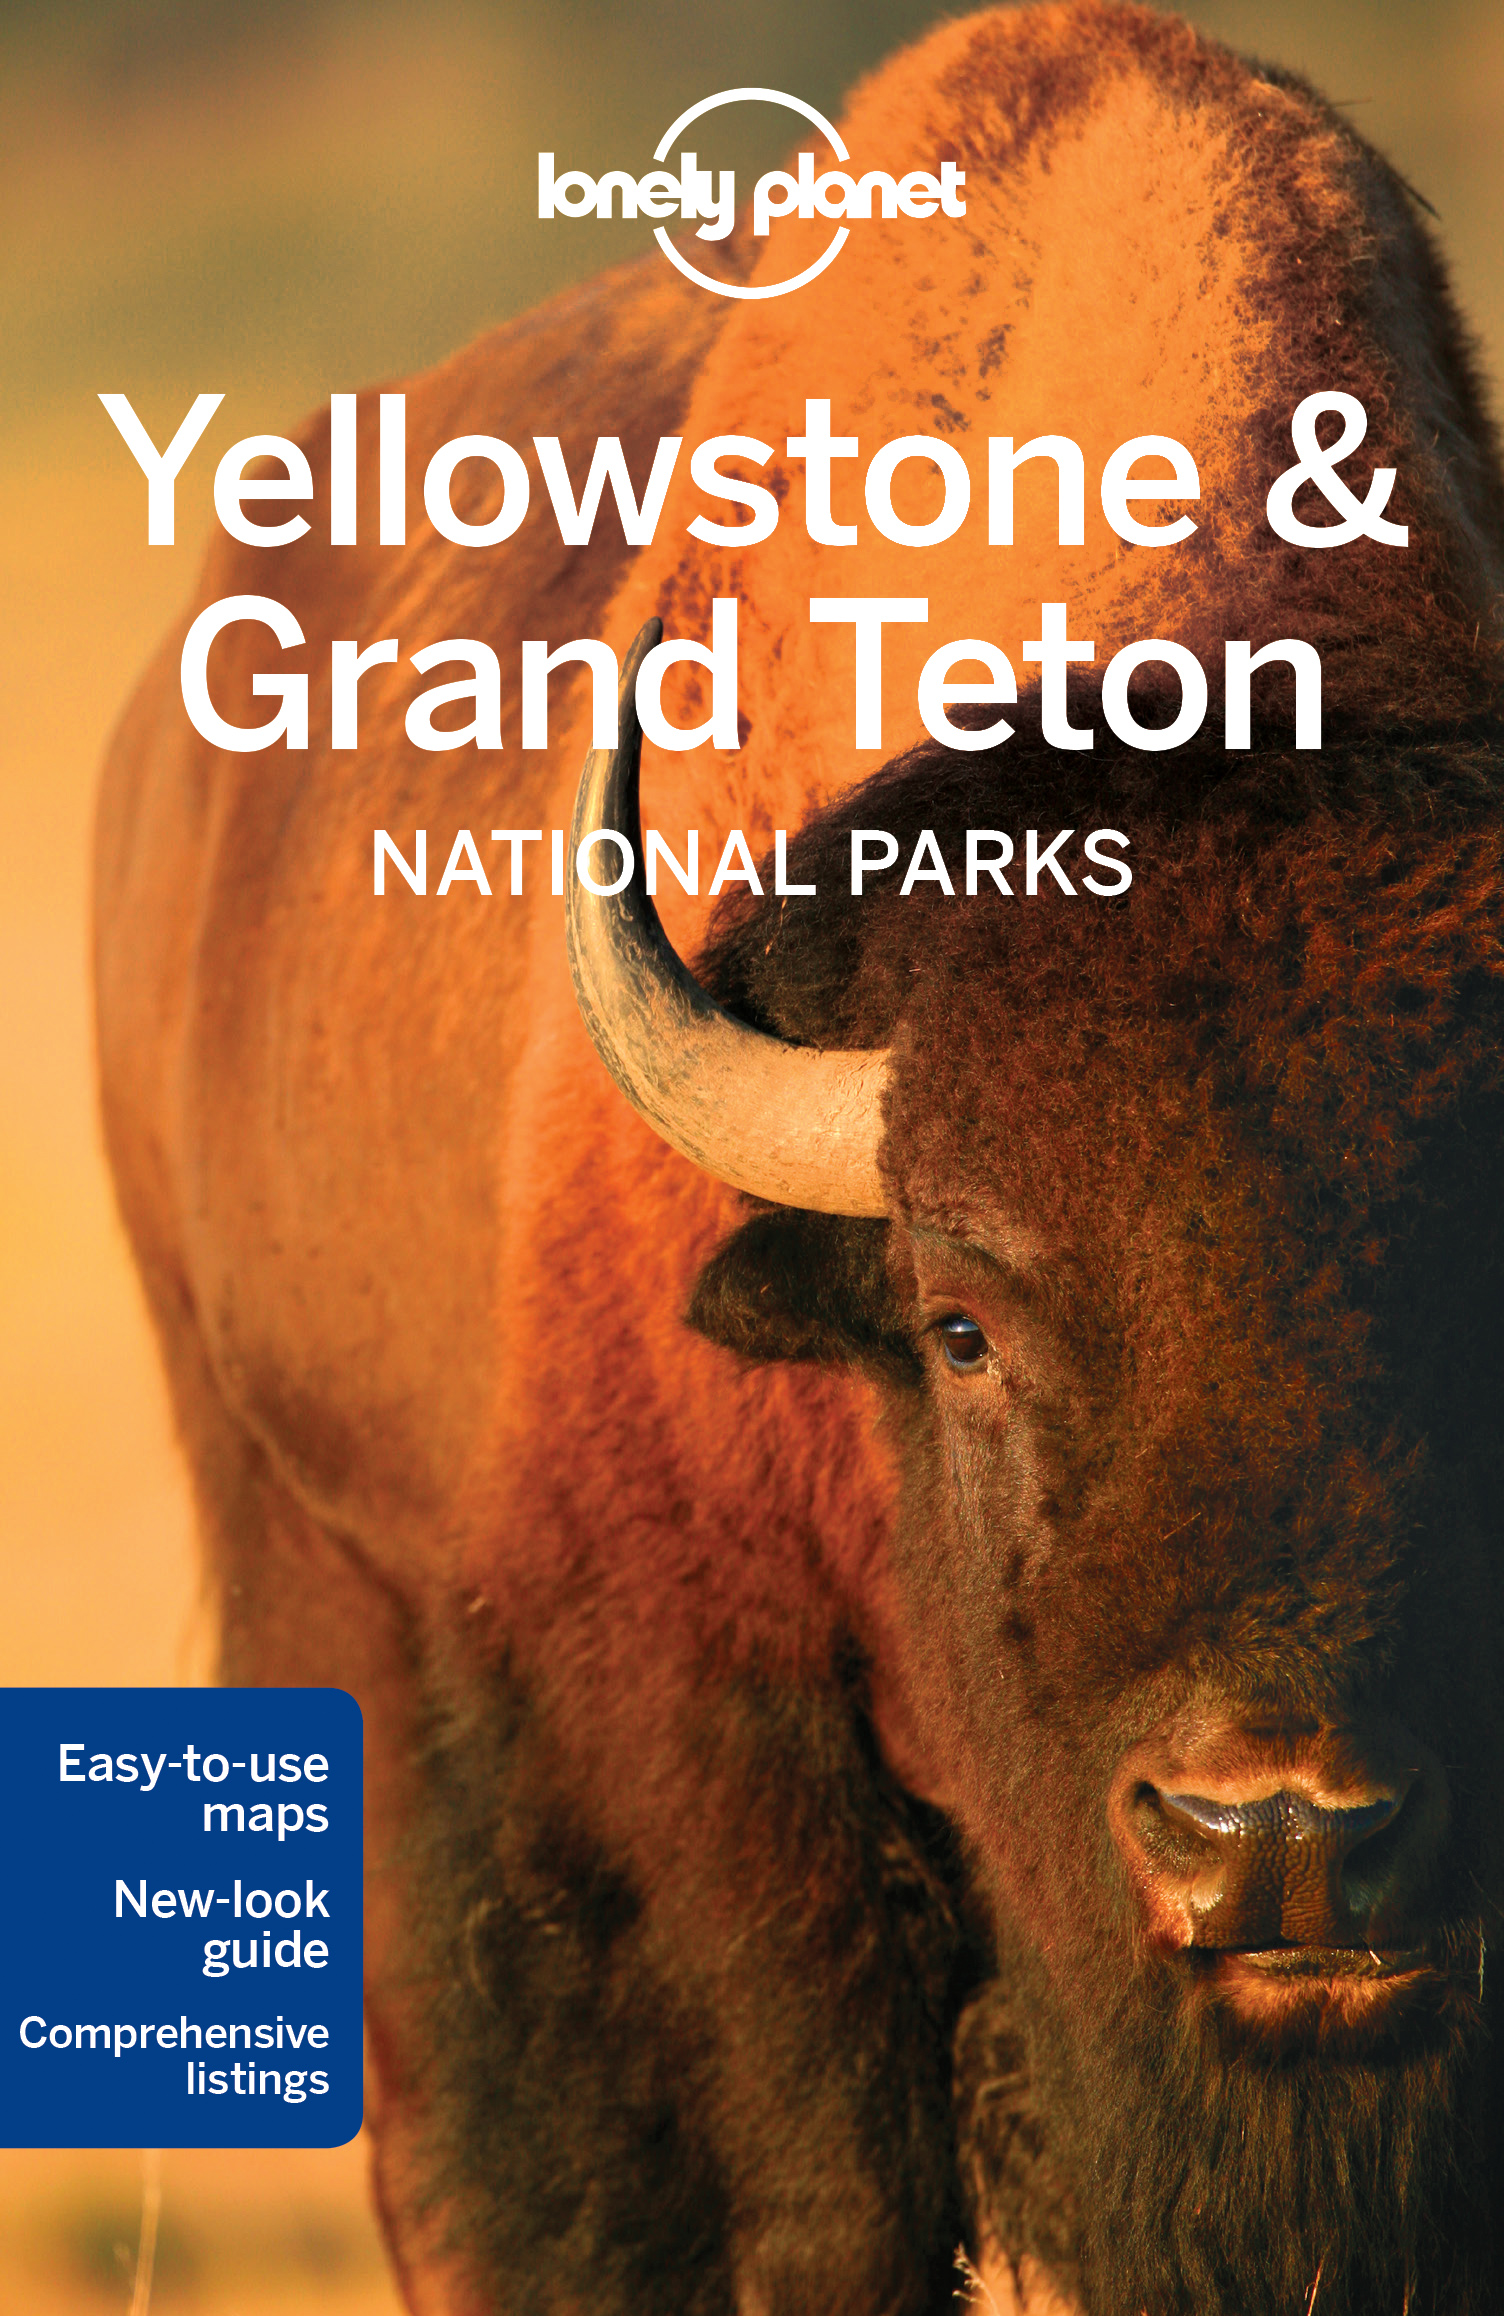 Yellowstone & Grand Teton Nation Park průvodce 4th 2016 Lonely Planet